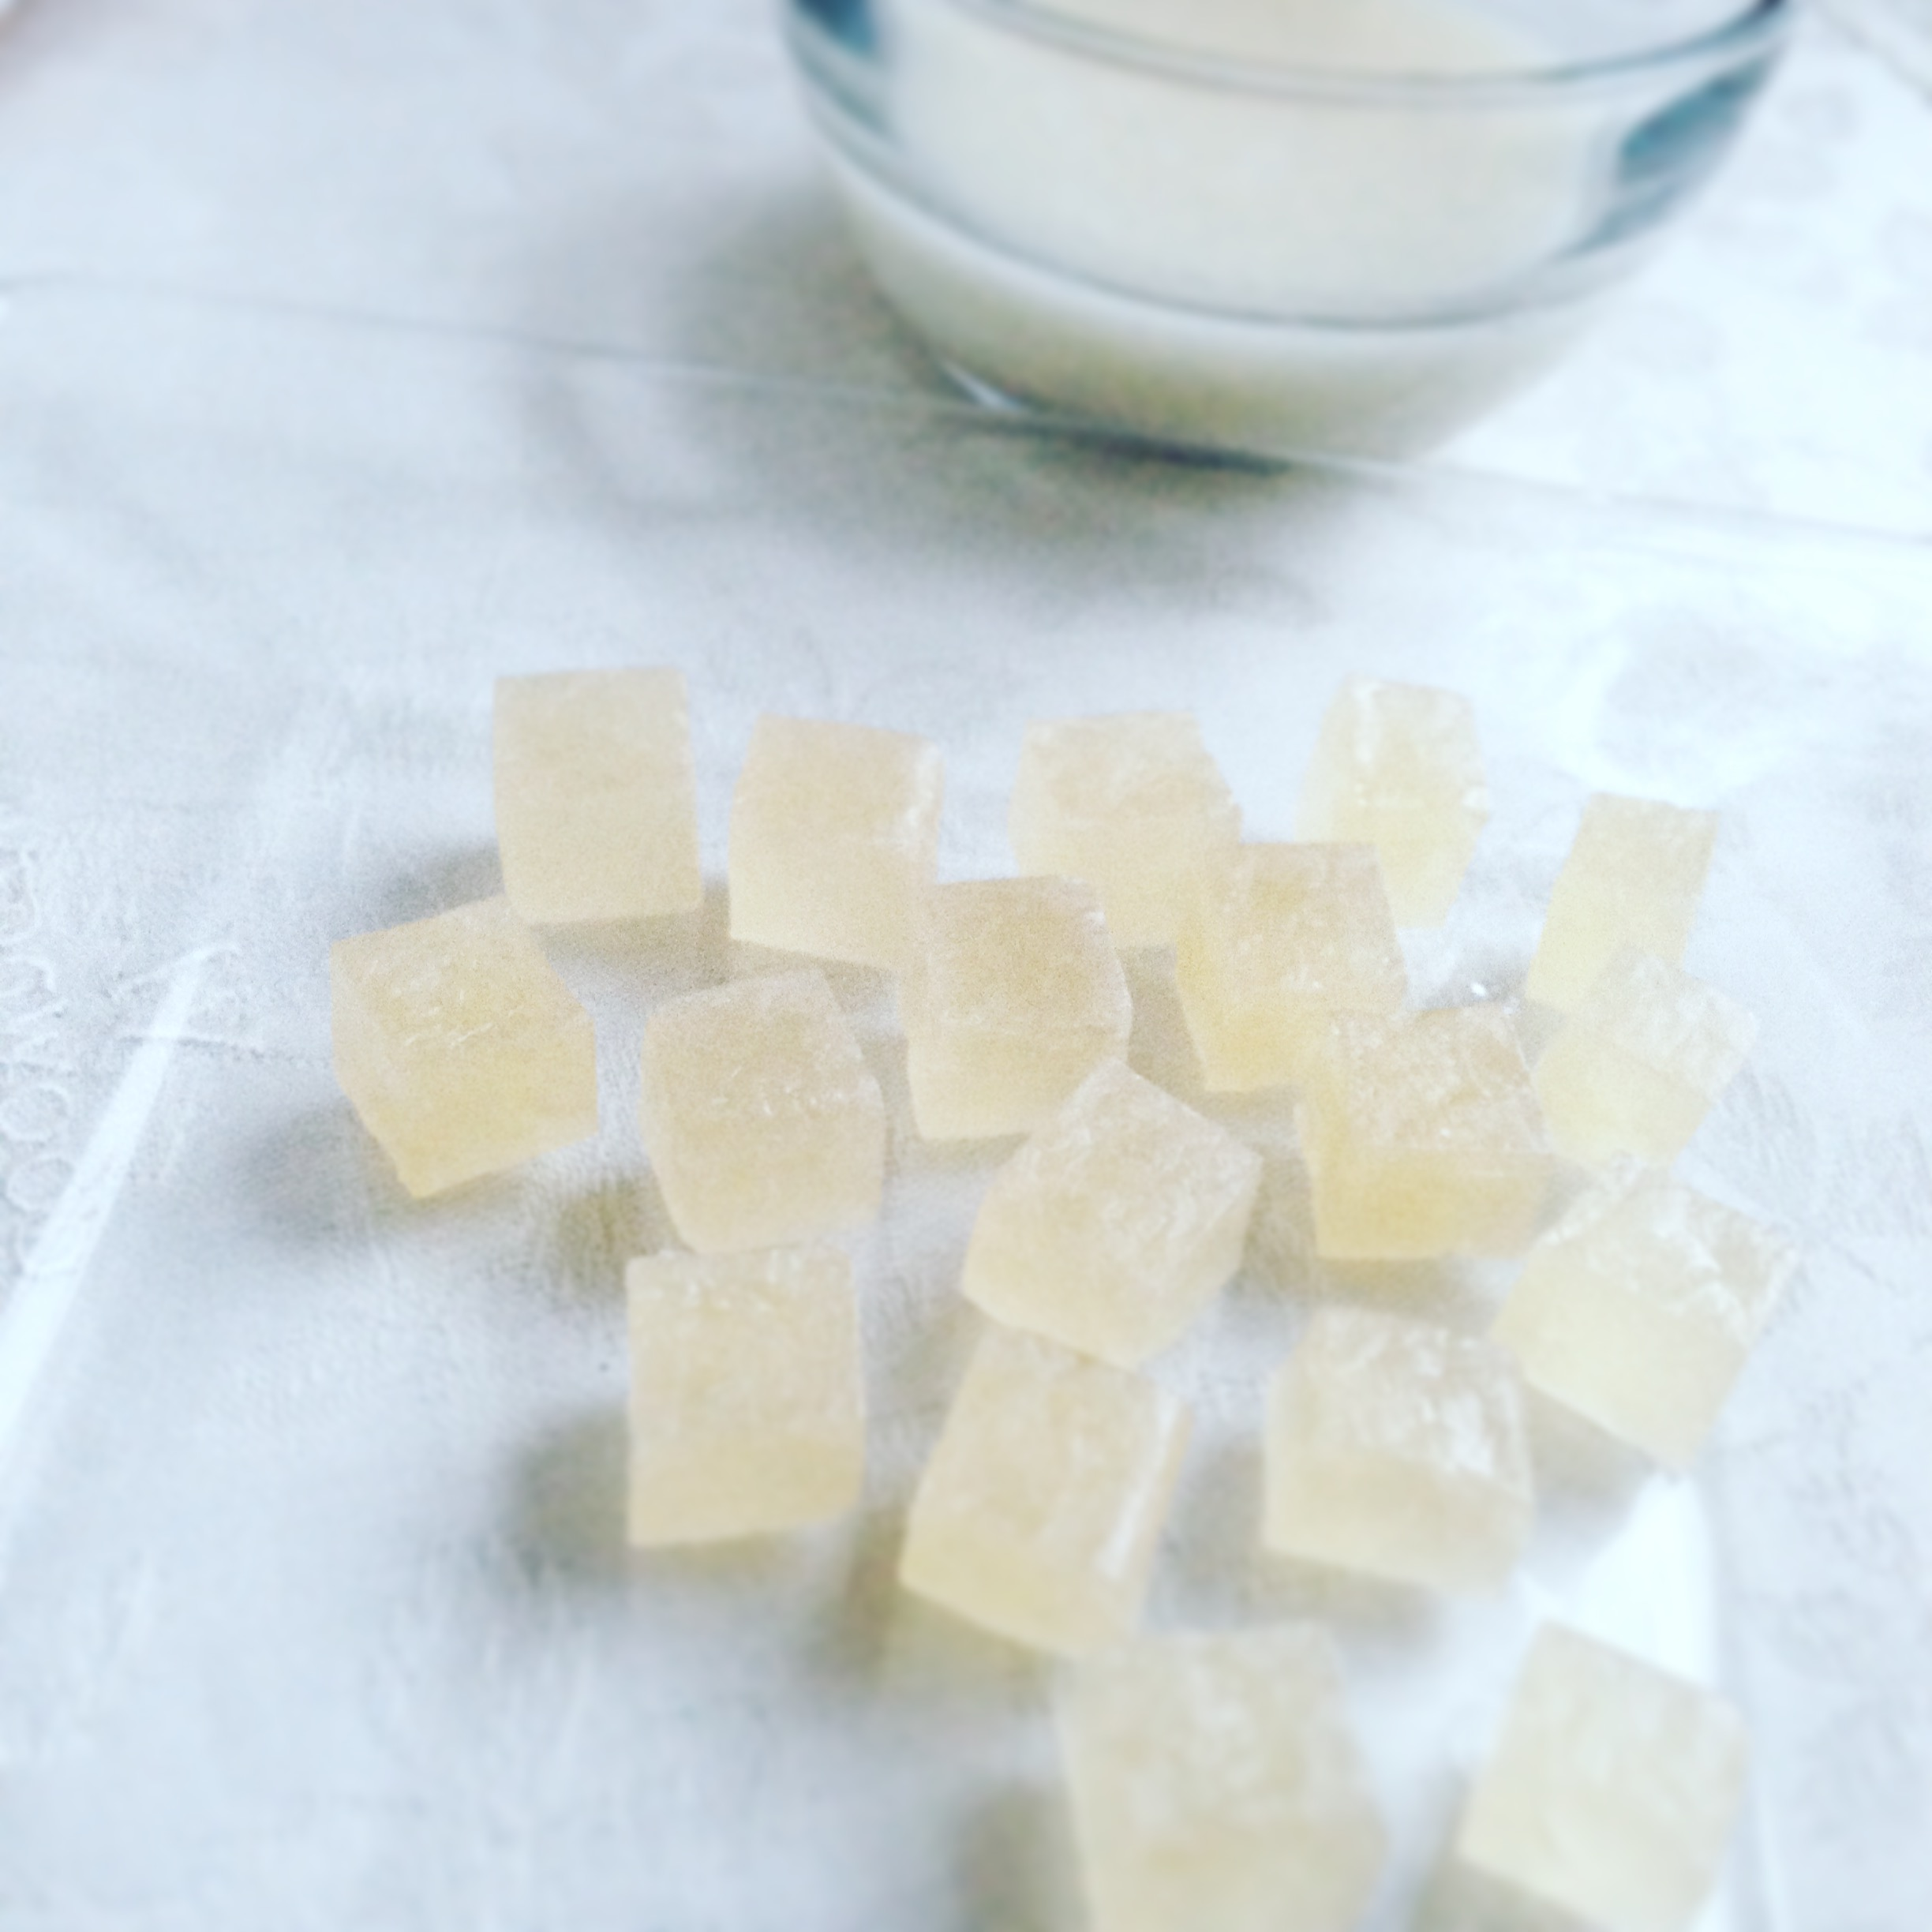 甘酒の琥珀糖 Kohaku Jelly-Candy of Amazake